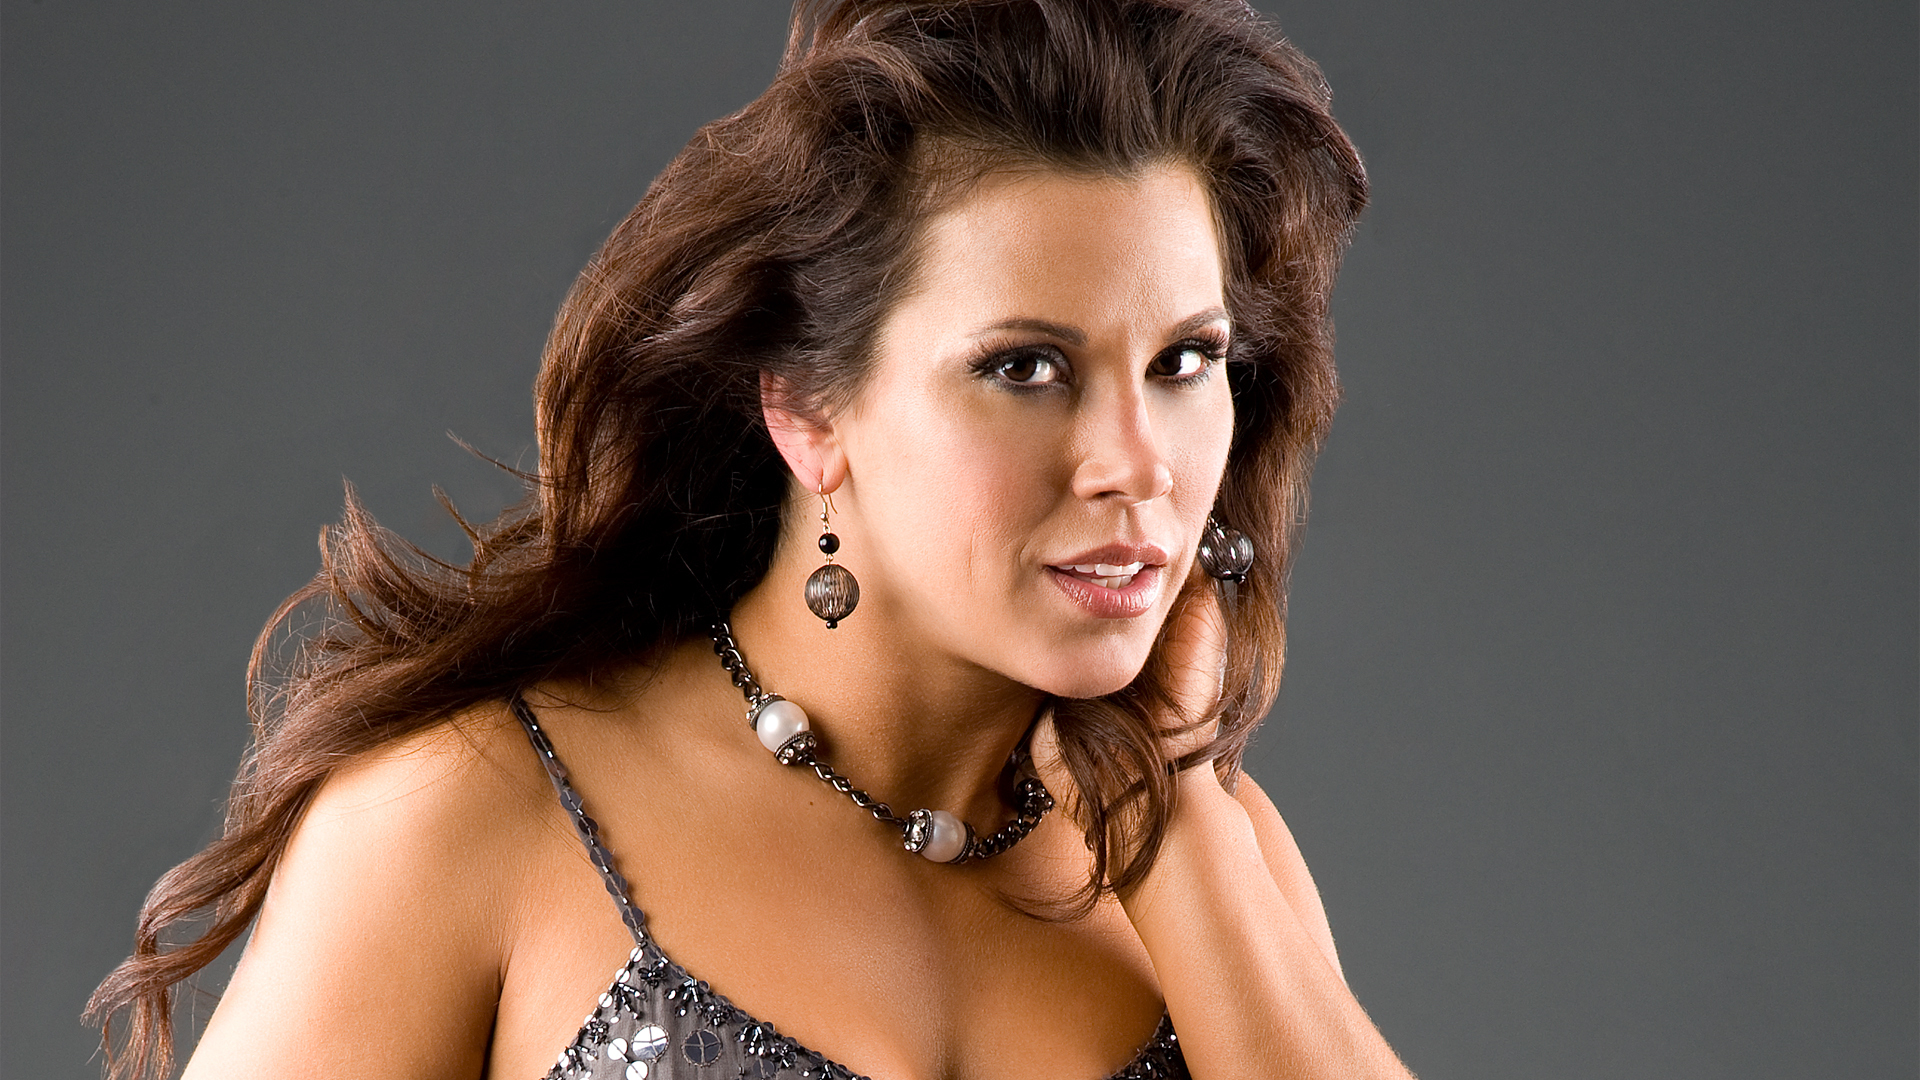 Mickie J   Mickie James Wallpaper 16288510 1920x1080